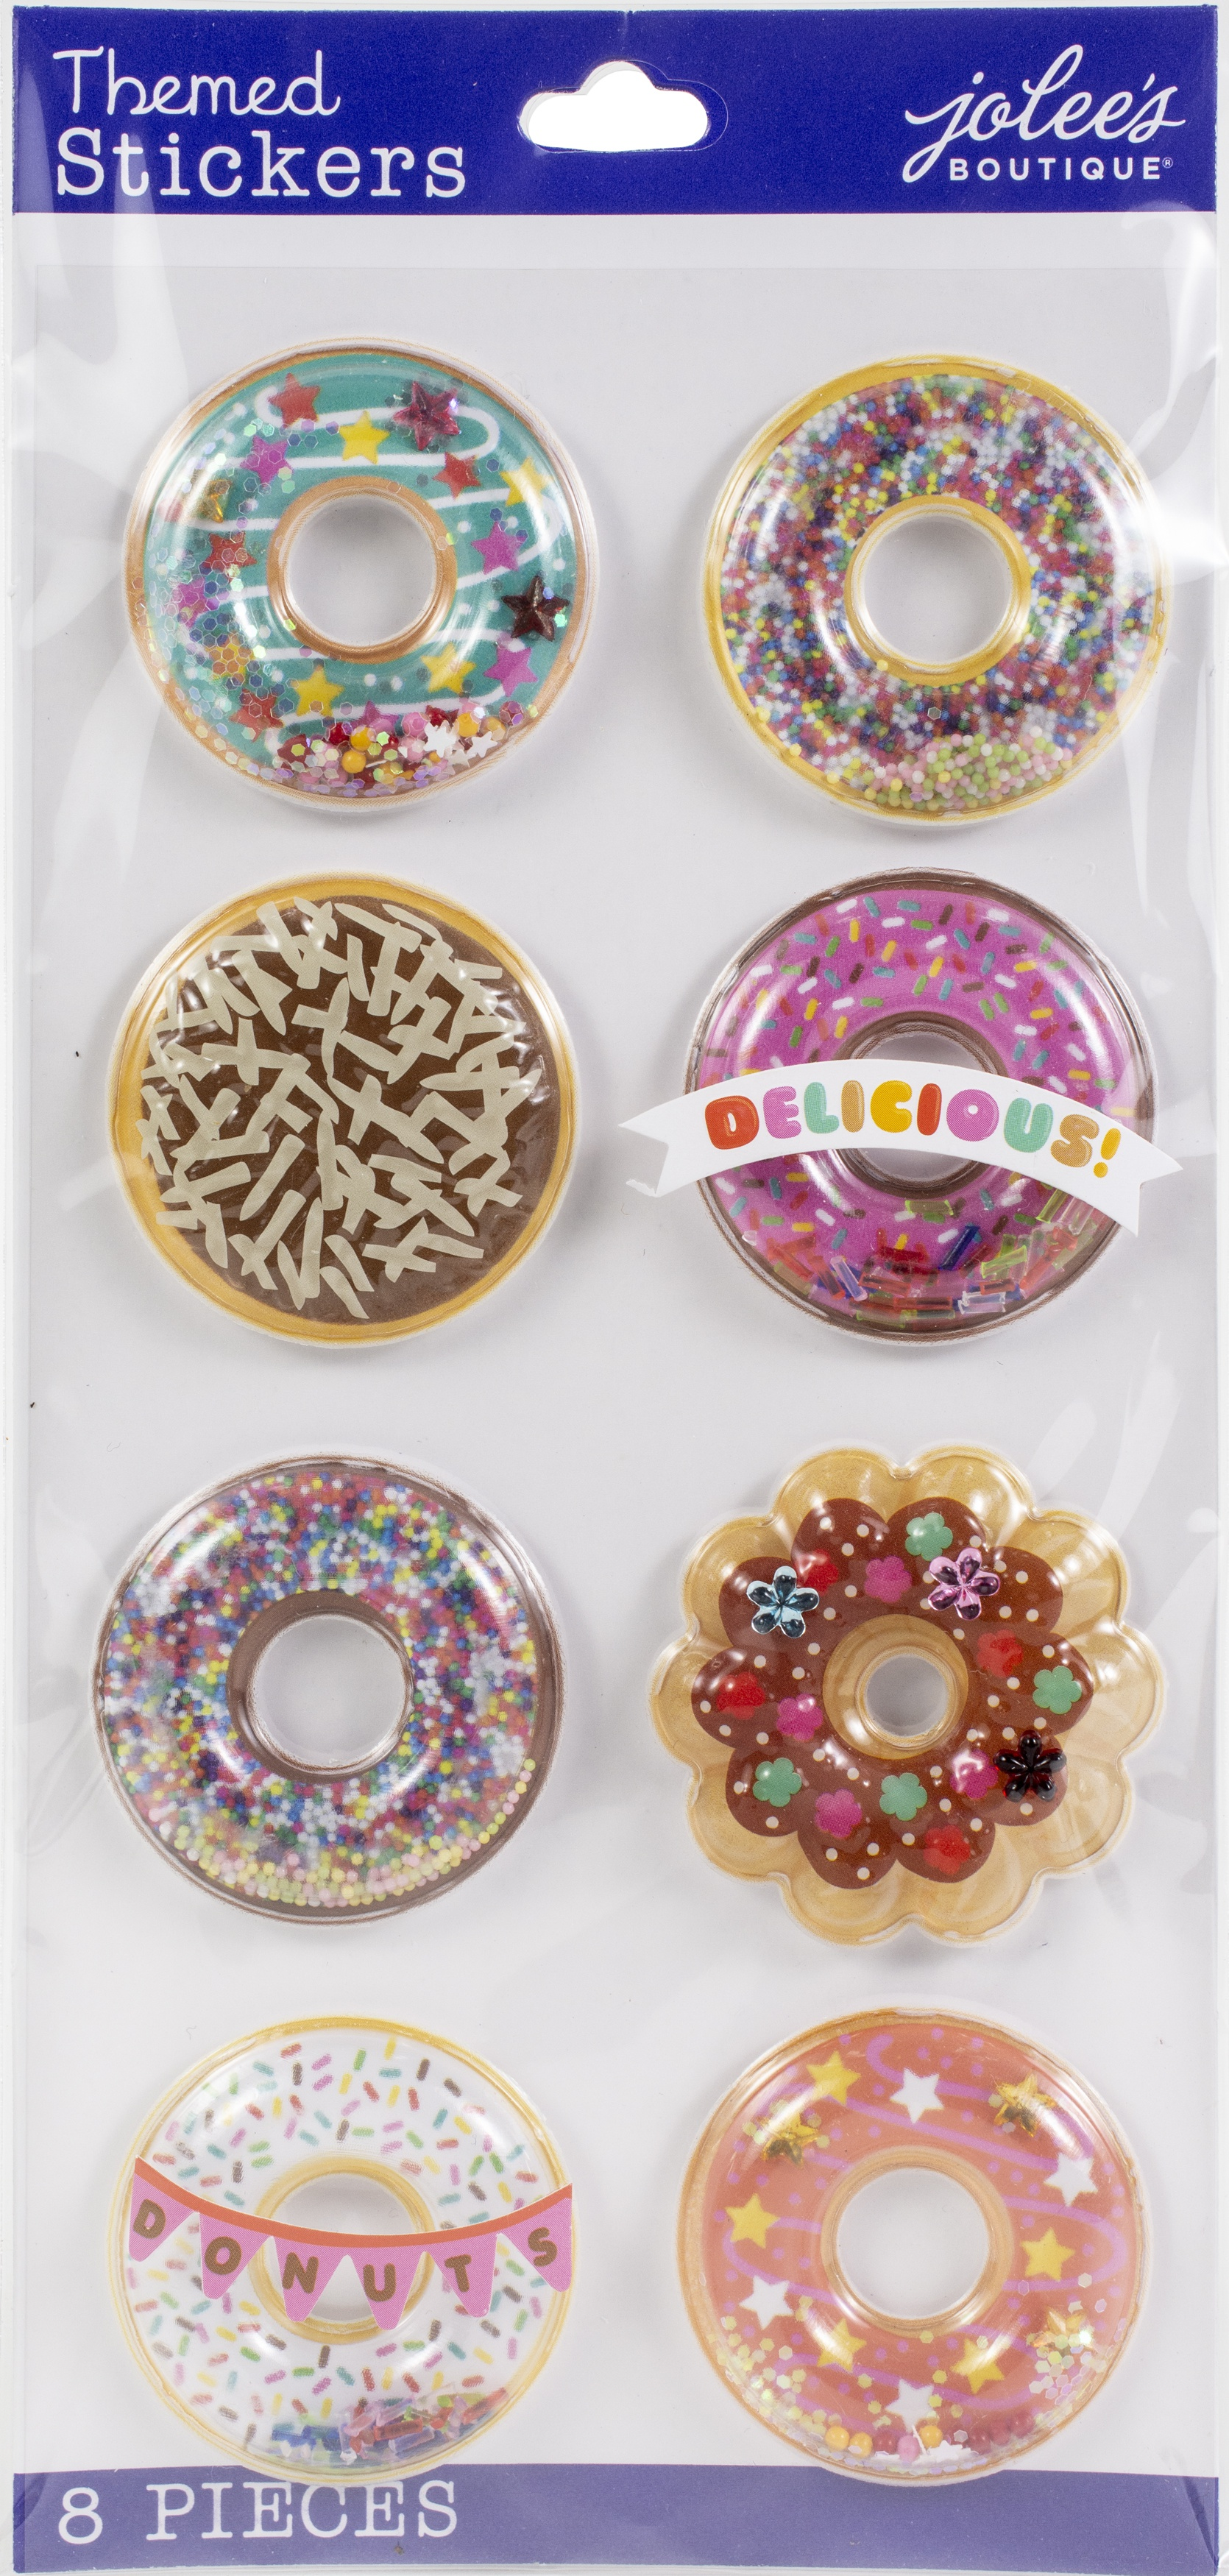 Jolee's Boutique Themed Embellishments-Donut Snow Globes